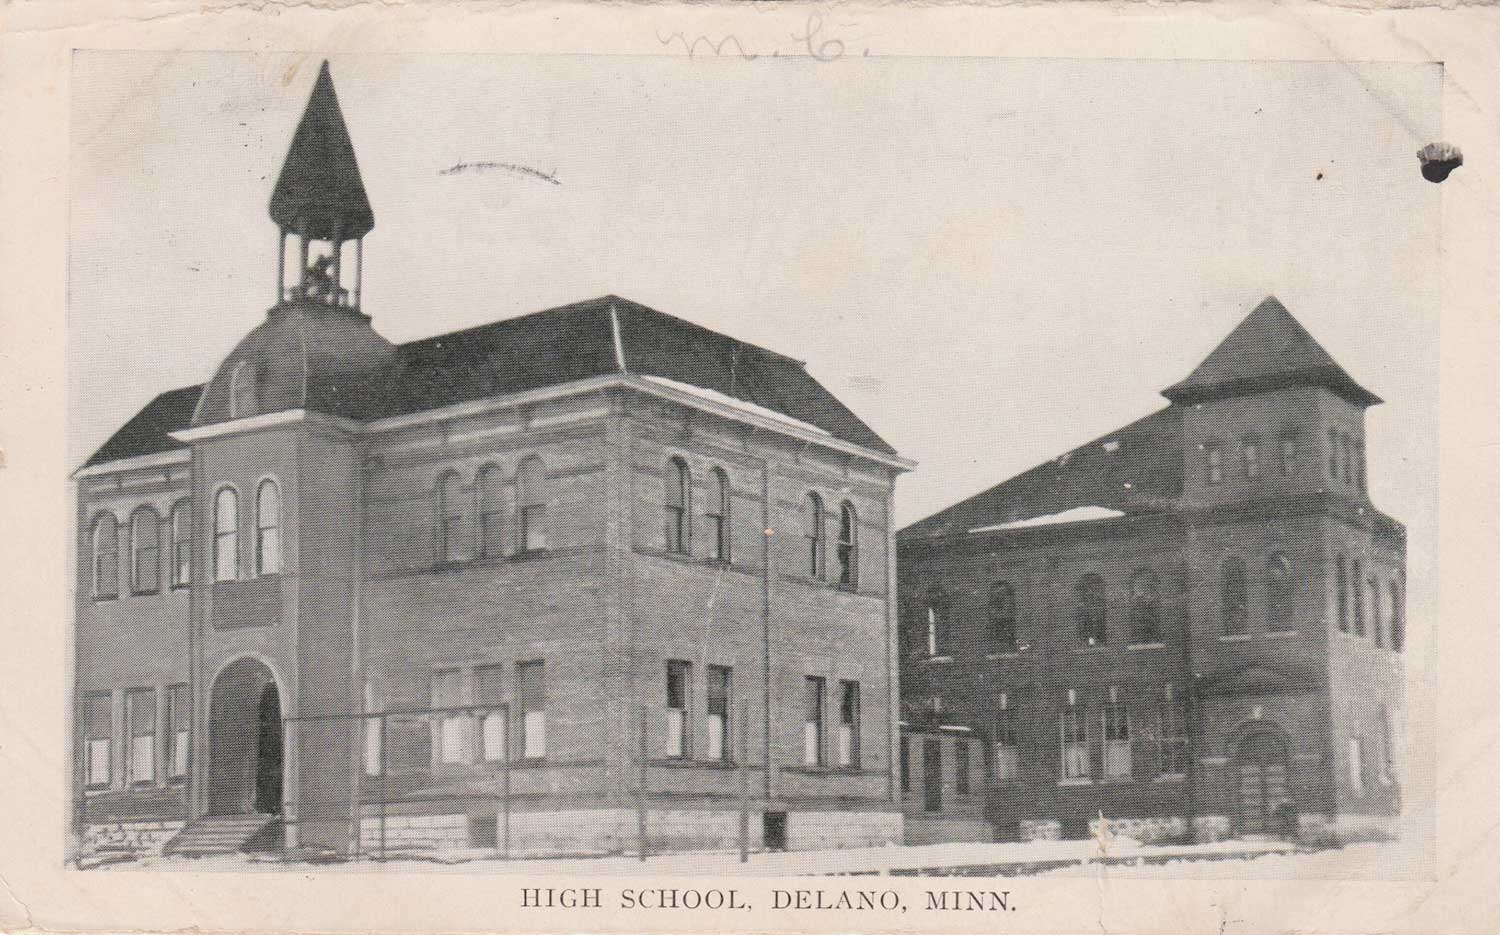 11. Delano High School Postcard